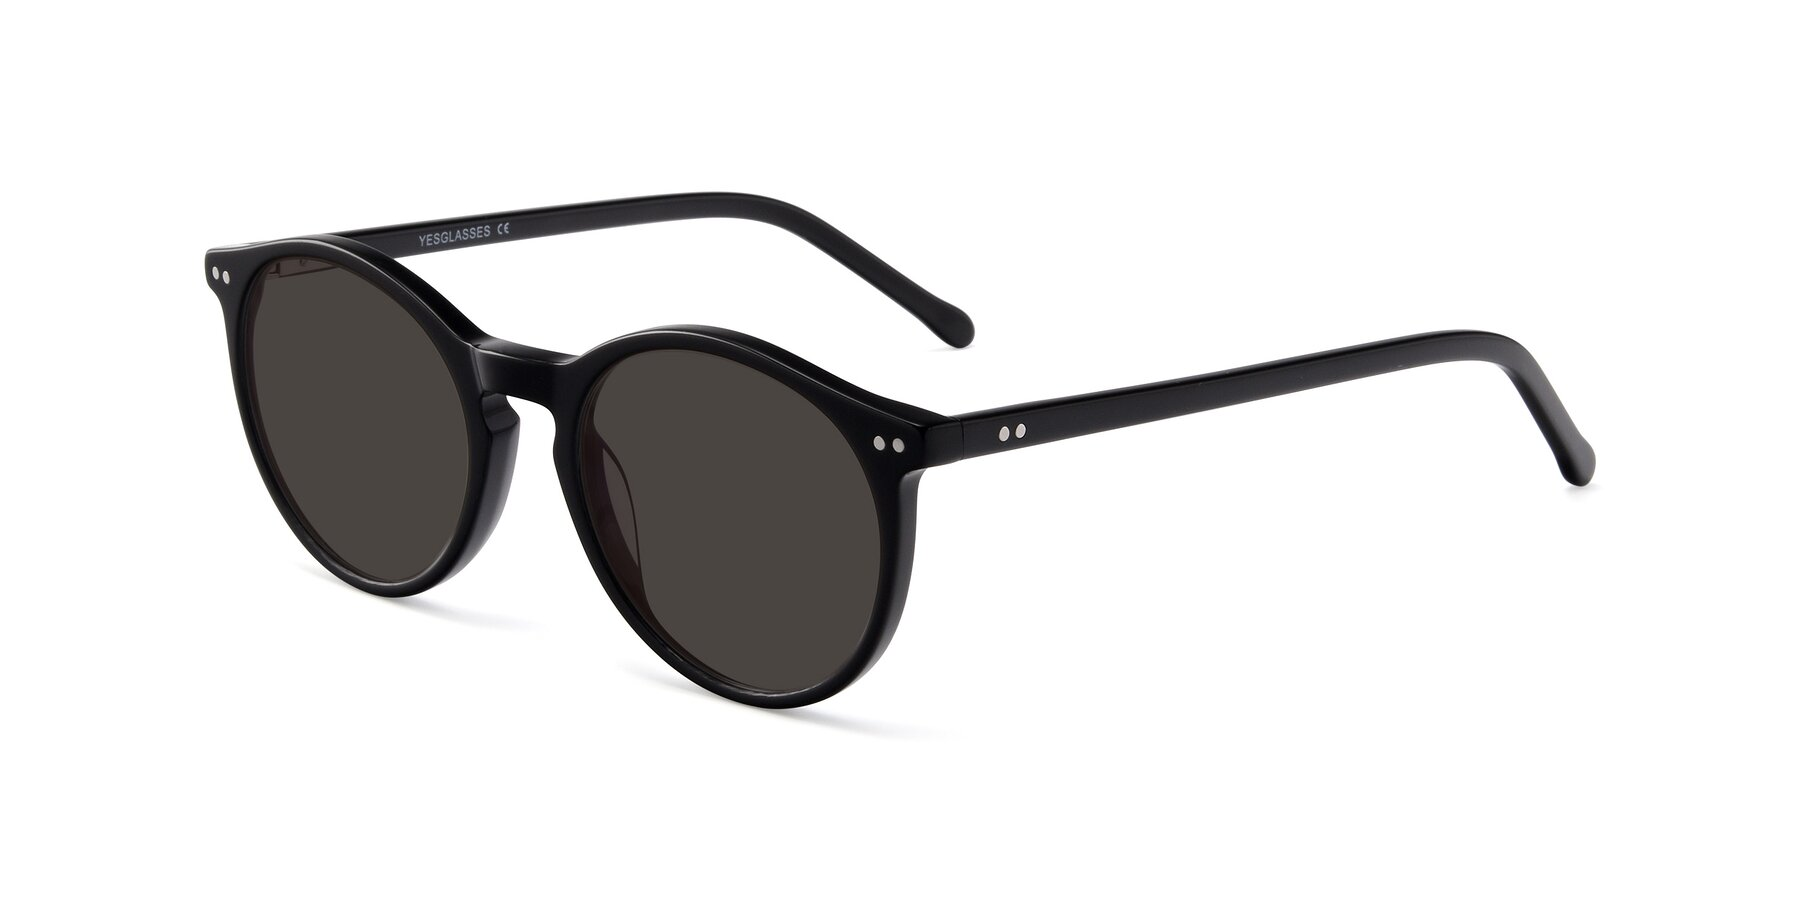 Angle of JS9026A in Black with Gray Tinted Lenses